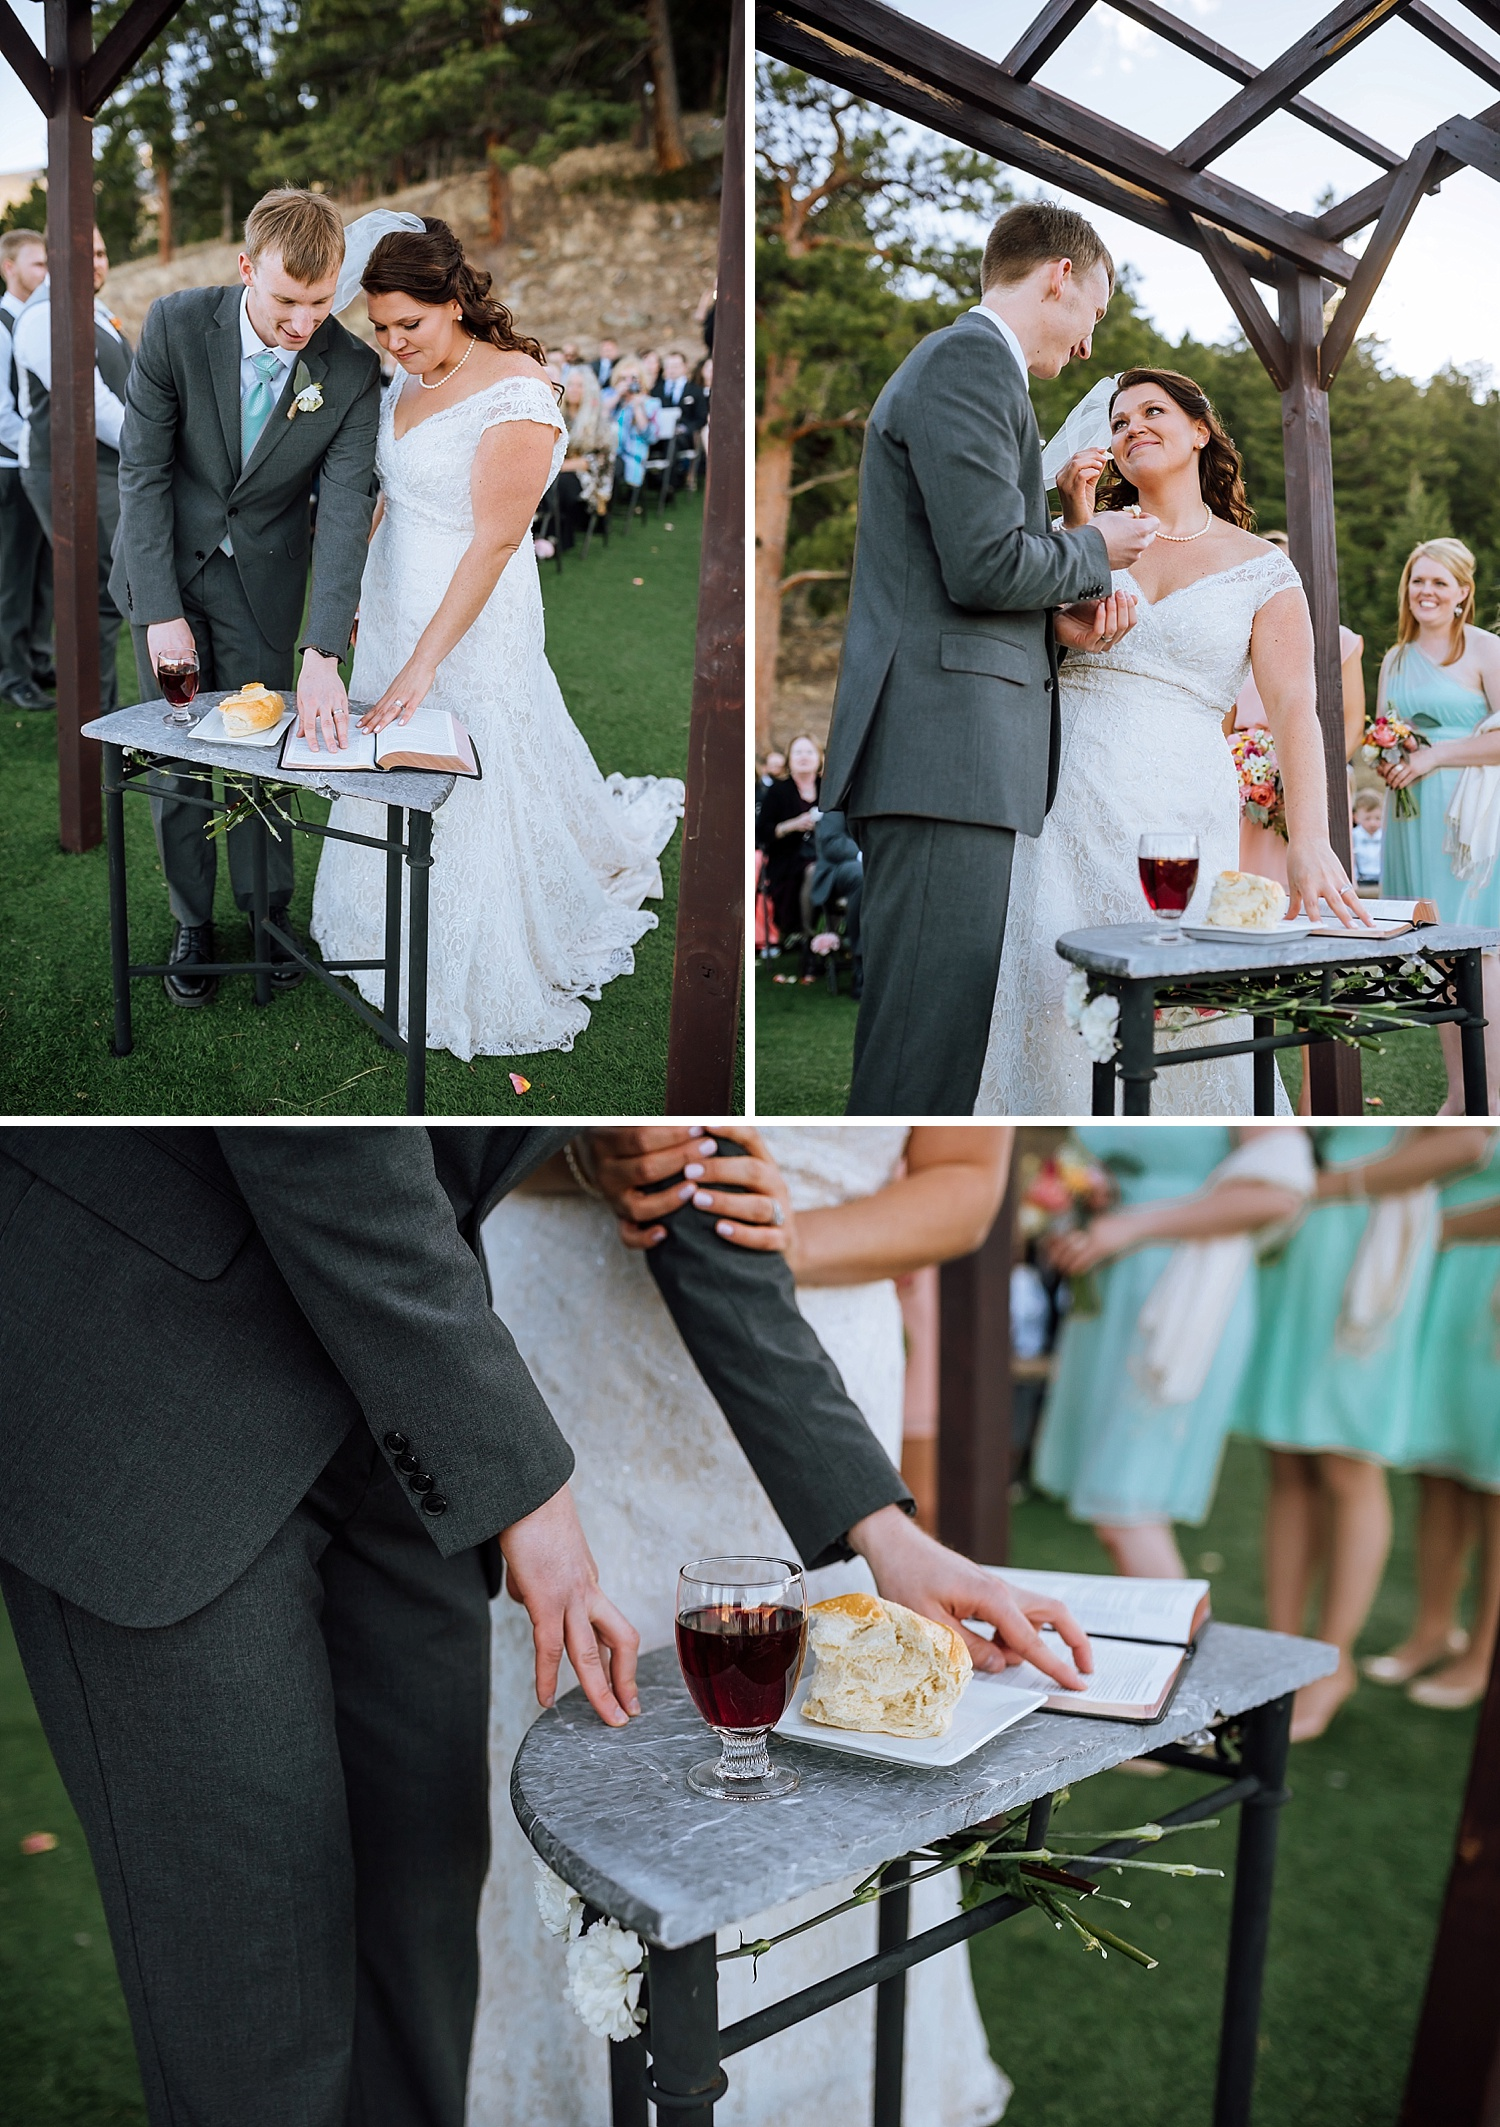 This is such a neat idea. Have communion during your wedding ceremony. This is a sweet touch. Photo by Maddie Mae Photography